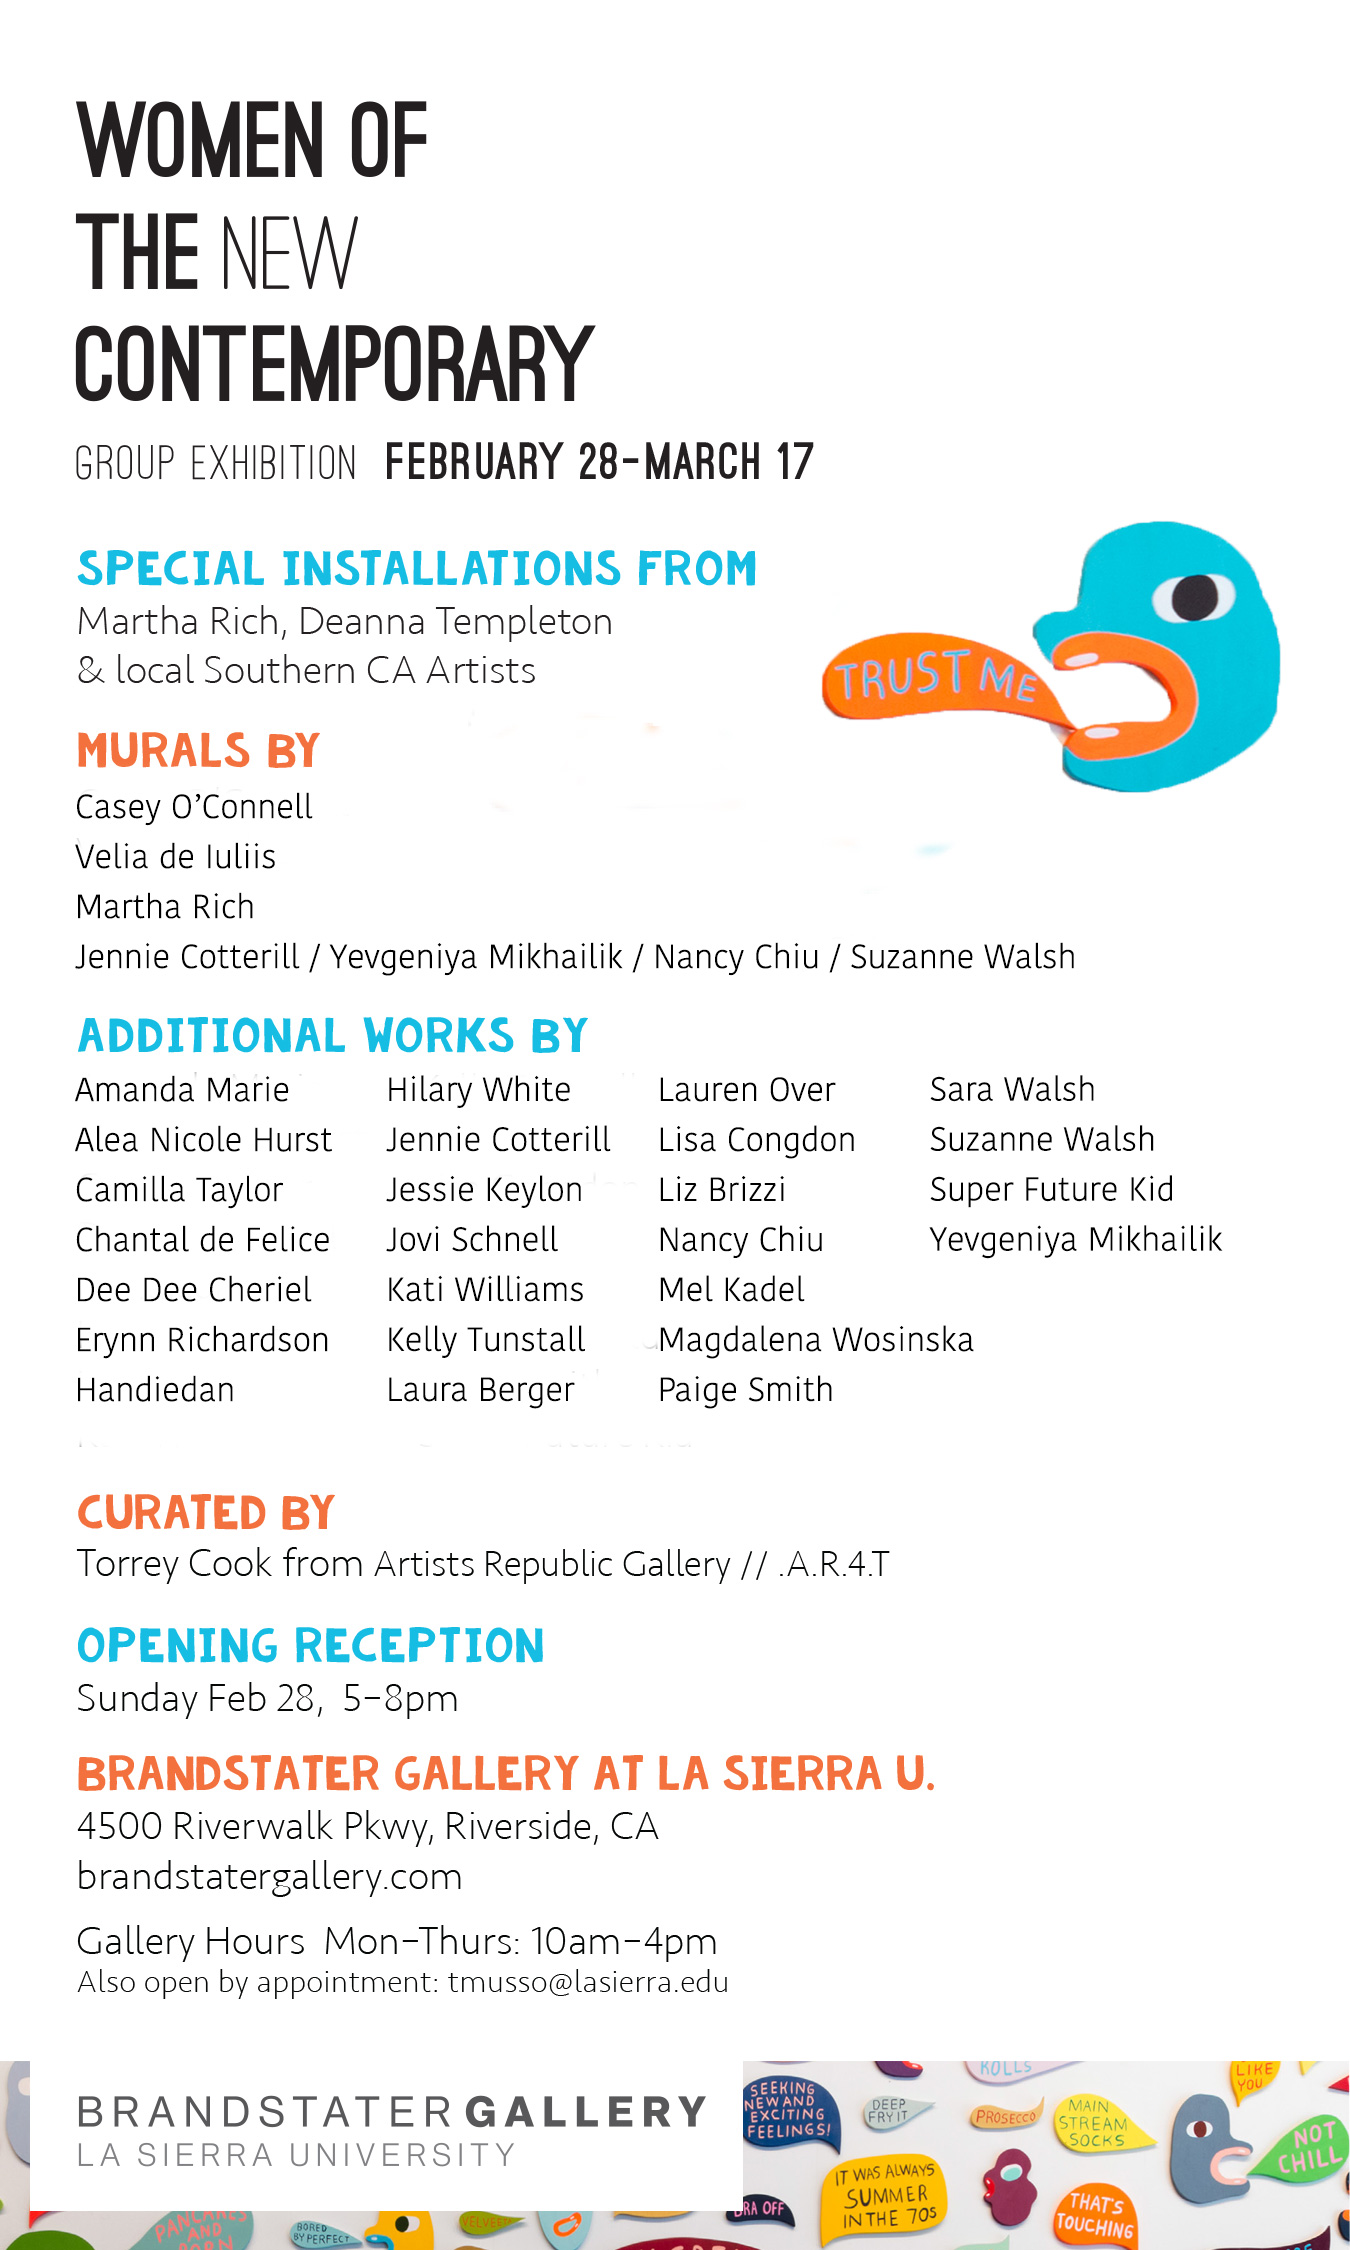 Hilary White Art in the exhibition Women of the new contemporary at La Sierra University in Brandstater Gallery